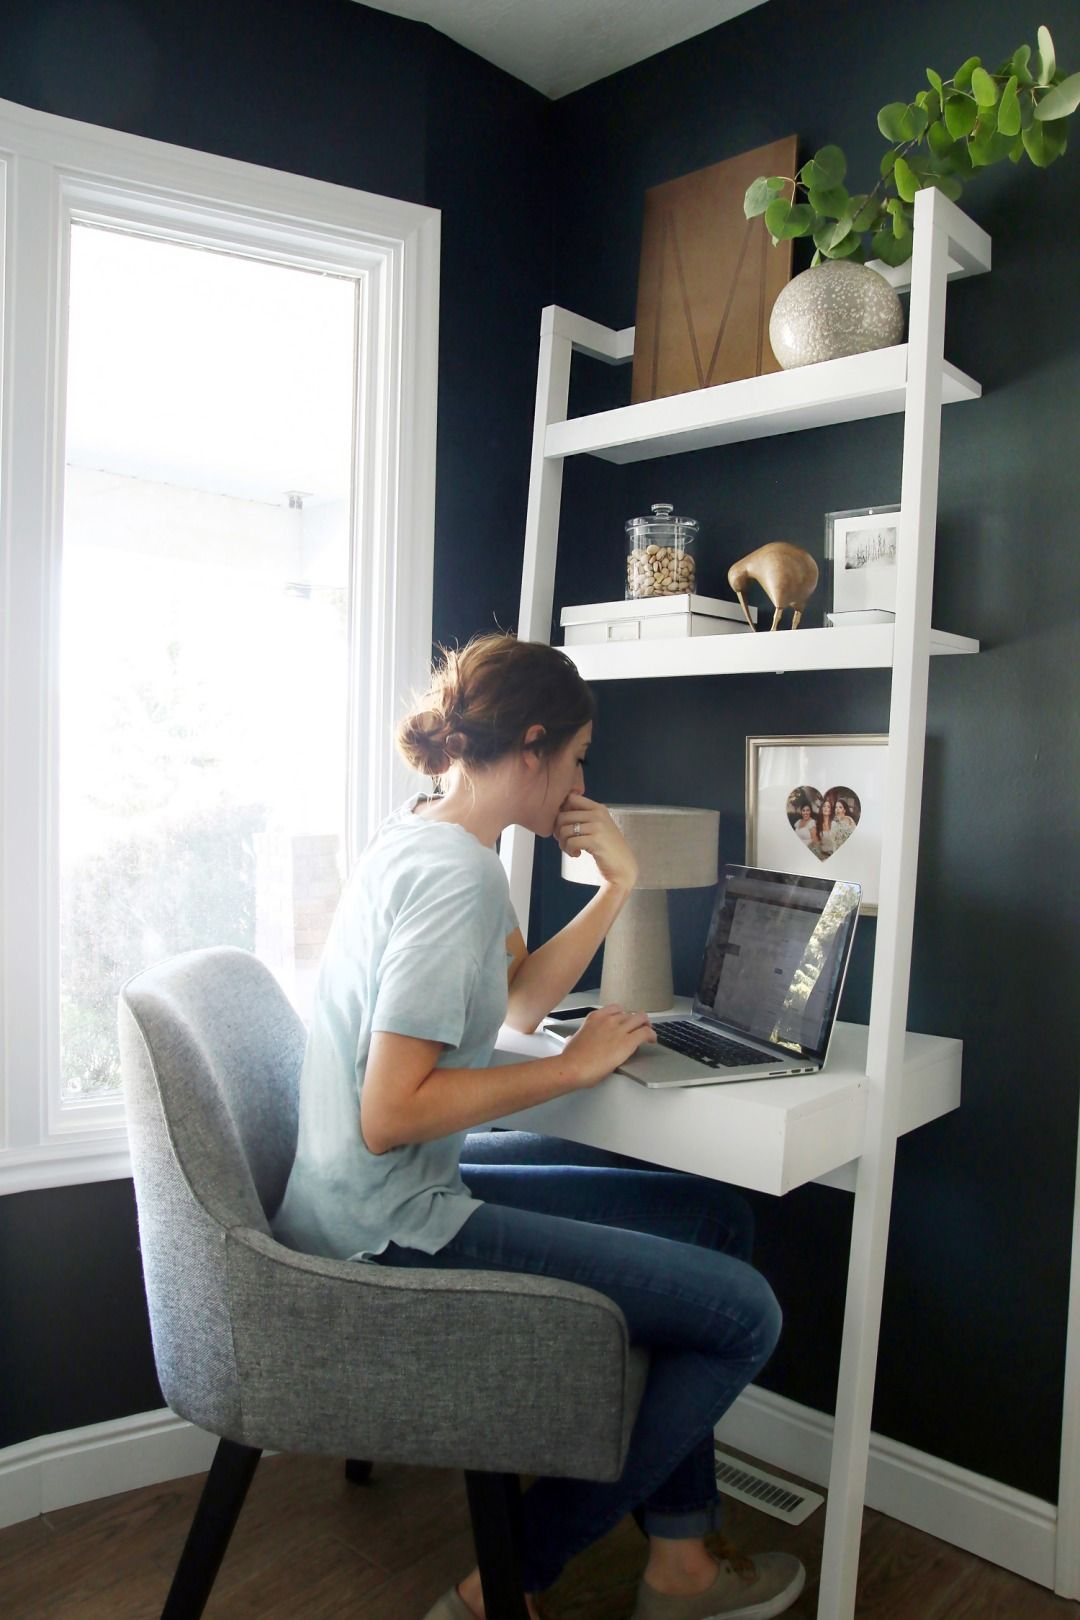 office designs for small spaces. Create A Stylish, Productive Little Nook, Even When Space Is Tight, With Our Chic, Modern Home Office Ideas For Small Spaces From @chrislovesjulia. Designs E